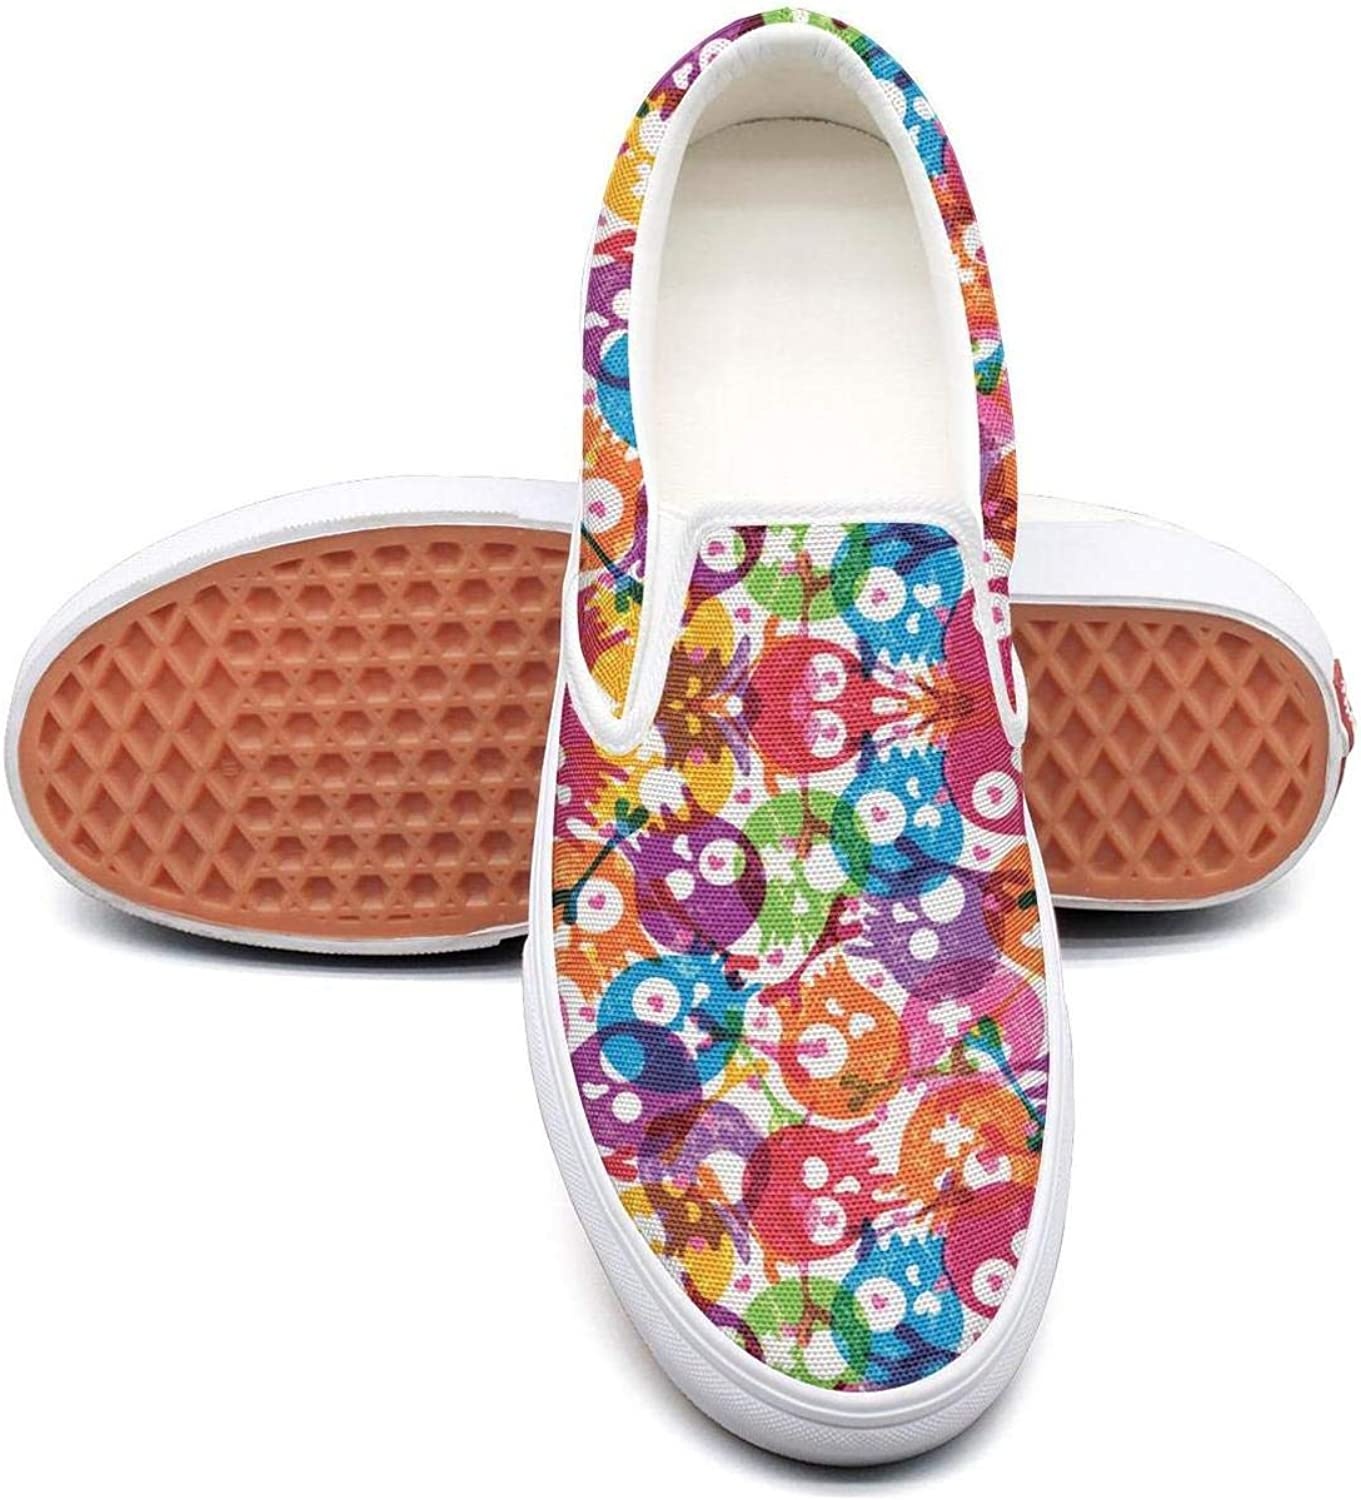 Sernfinjdr Women's colorful Skull Party Art Fashion Casual Canvas Slip on shoes Athletic Running Sneakers shoes